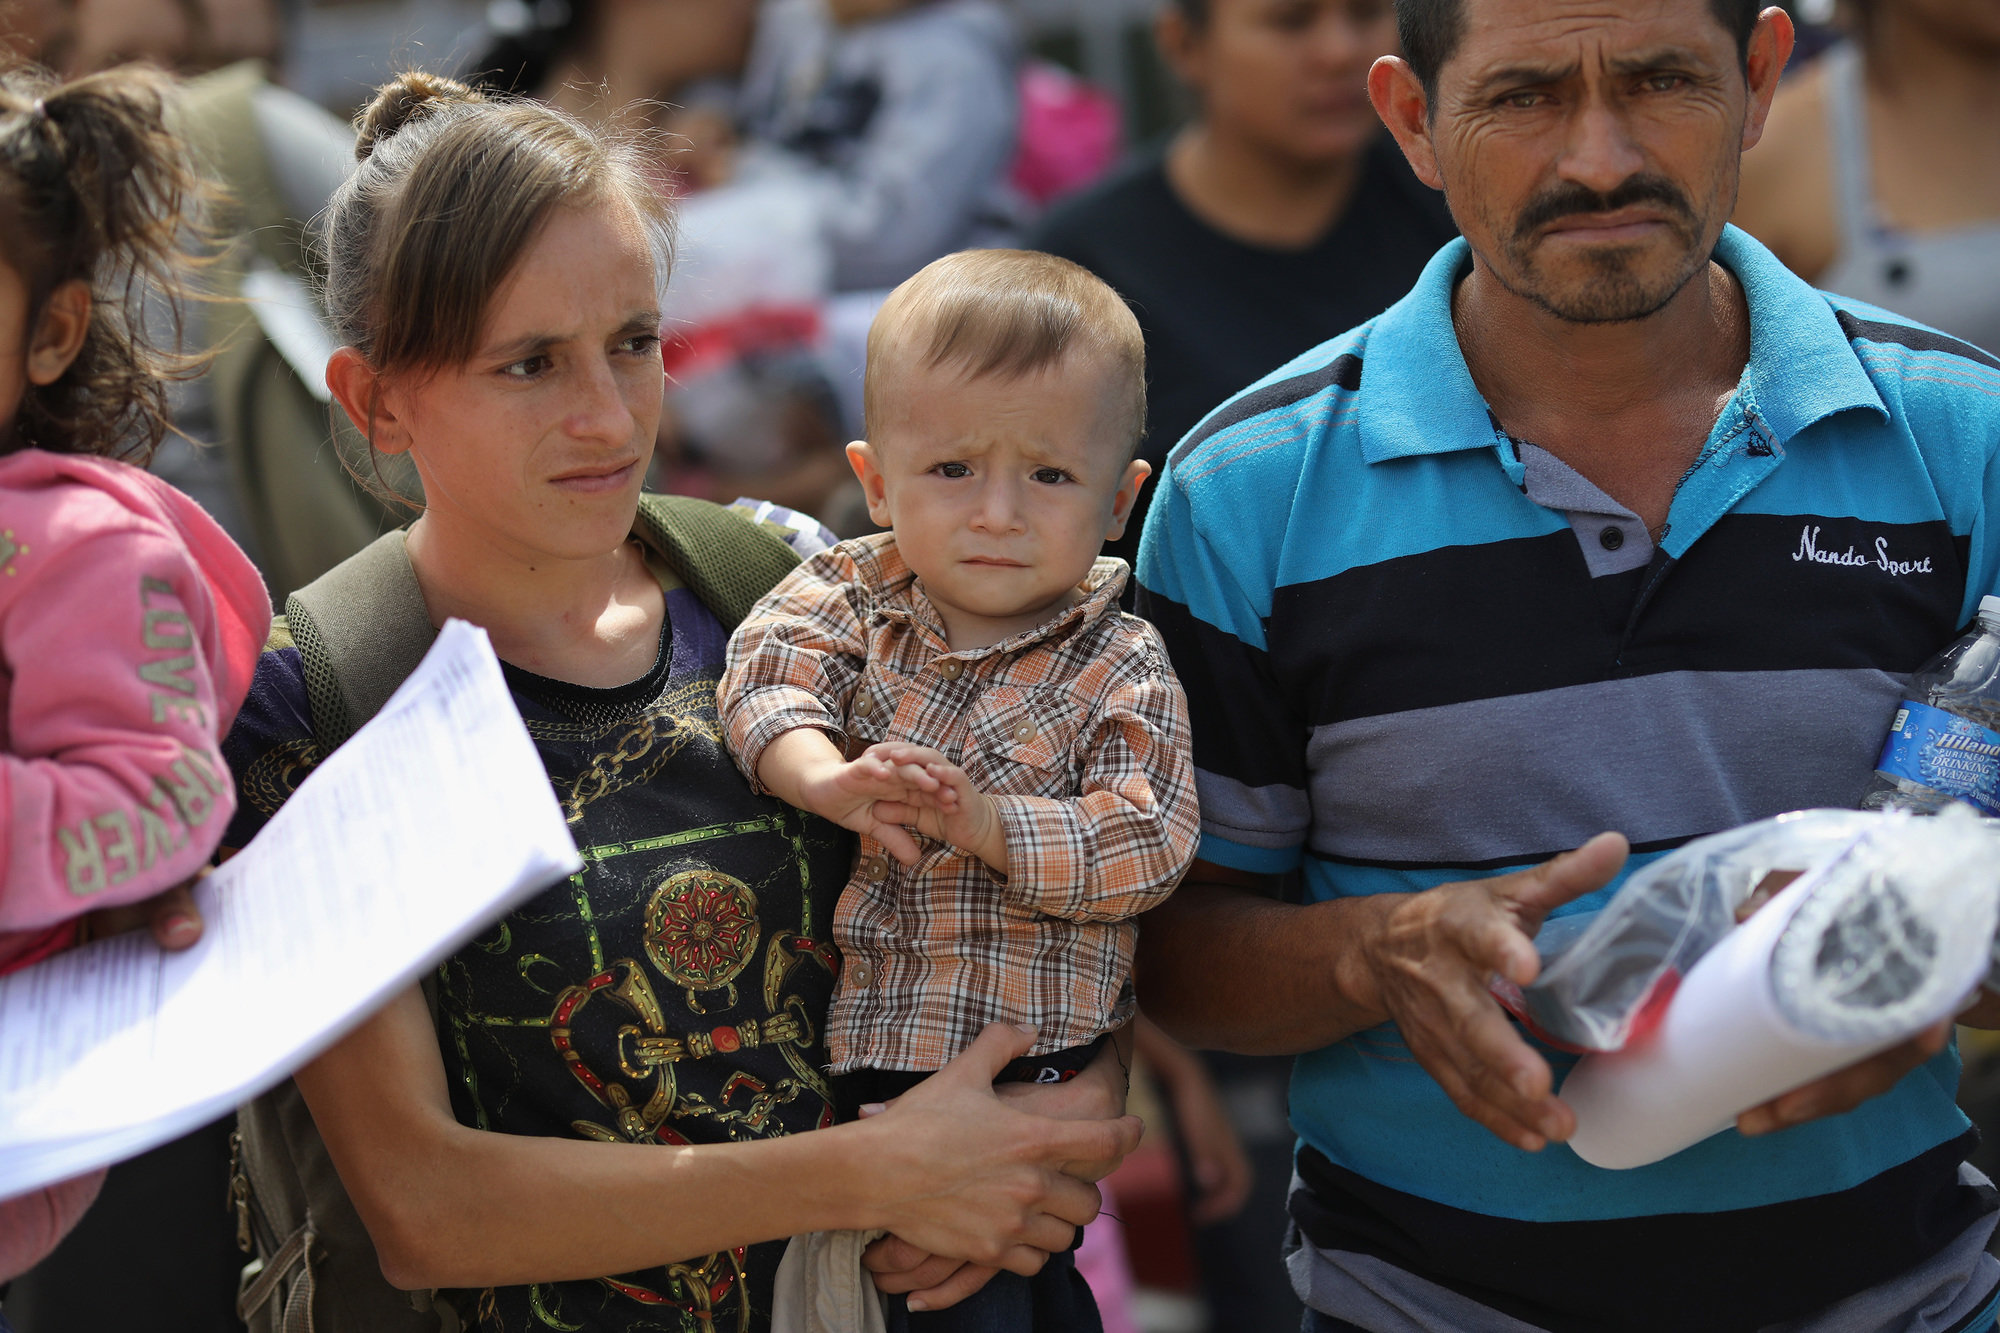 Migrant families from Central America are released at the border with orders to appear for future hearings in immigration court, on June 11, 2018 in McAllen, Texas.